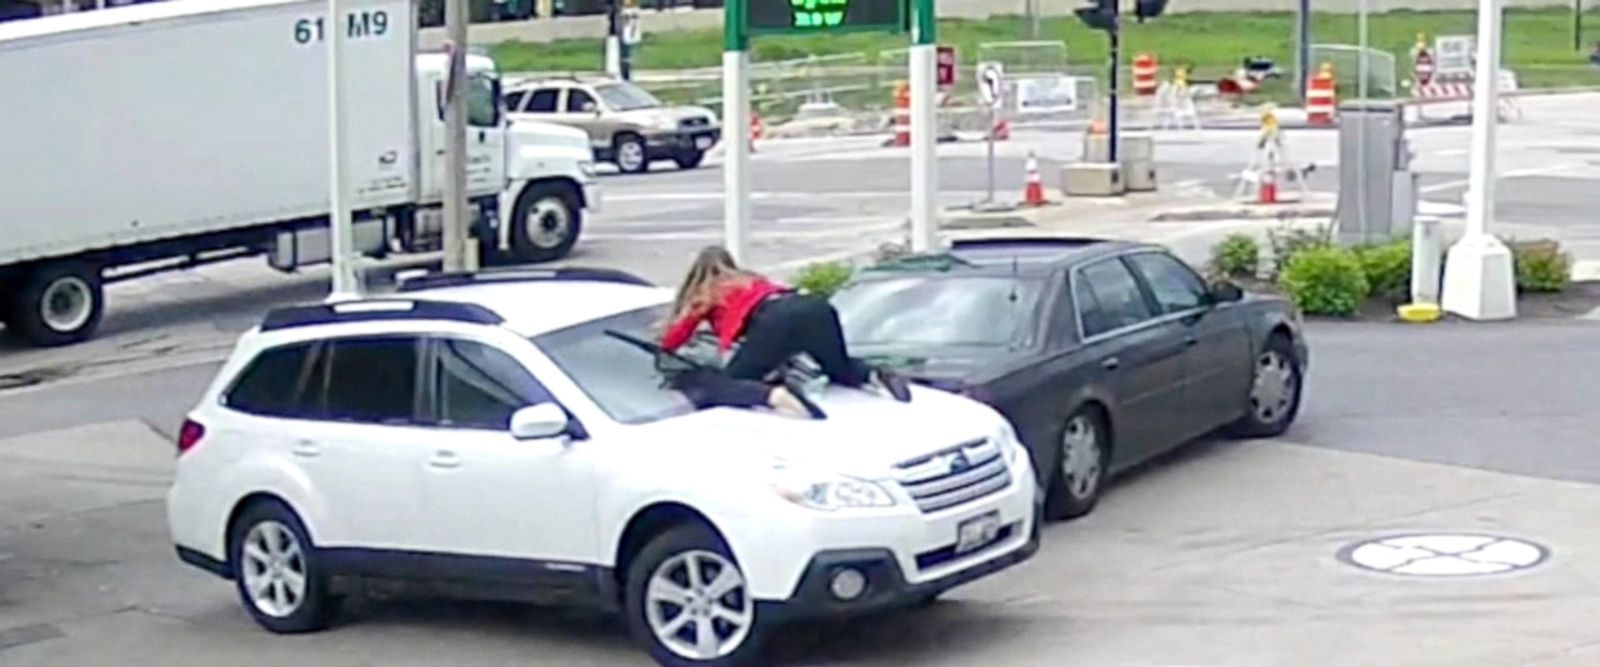 Melissa Smith said when thieves tried to steal her car at the gas station in Wisconsin on Tuesday, she fought back, jumping on the hood.